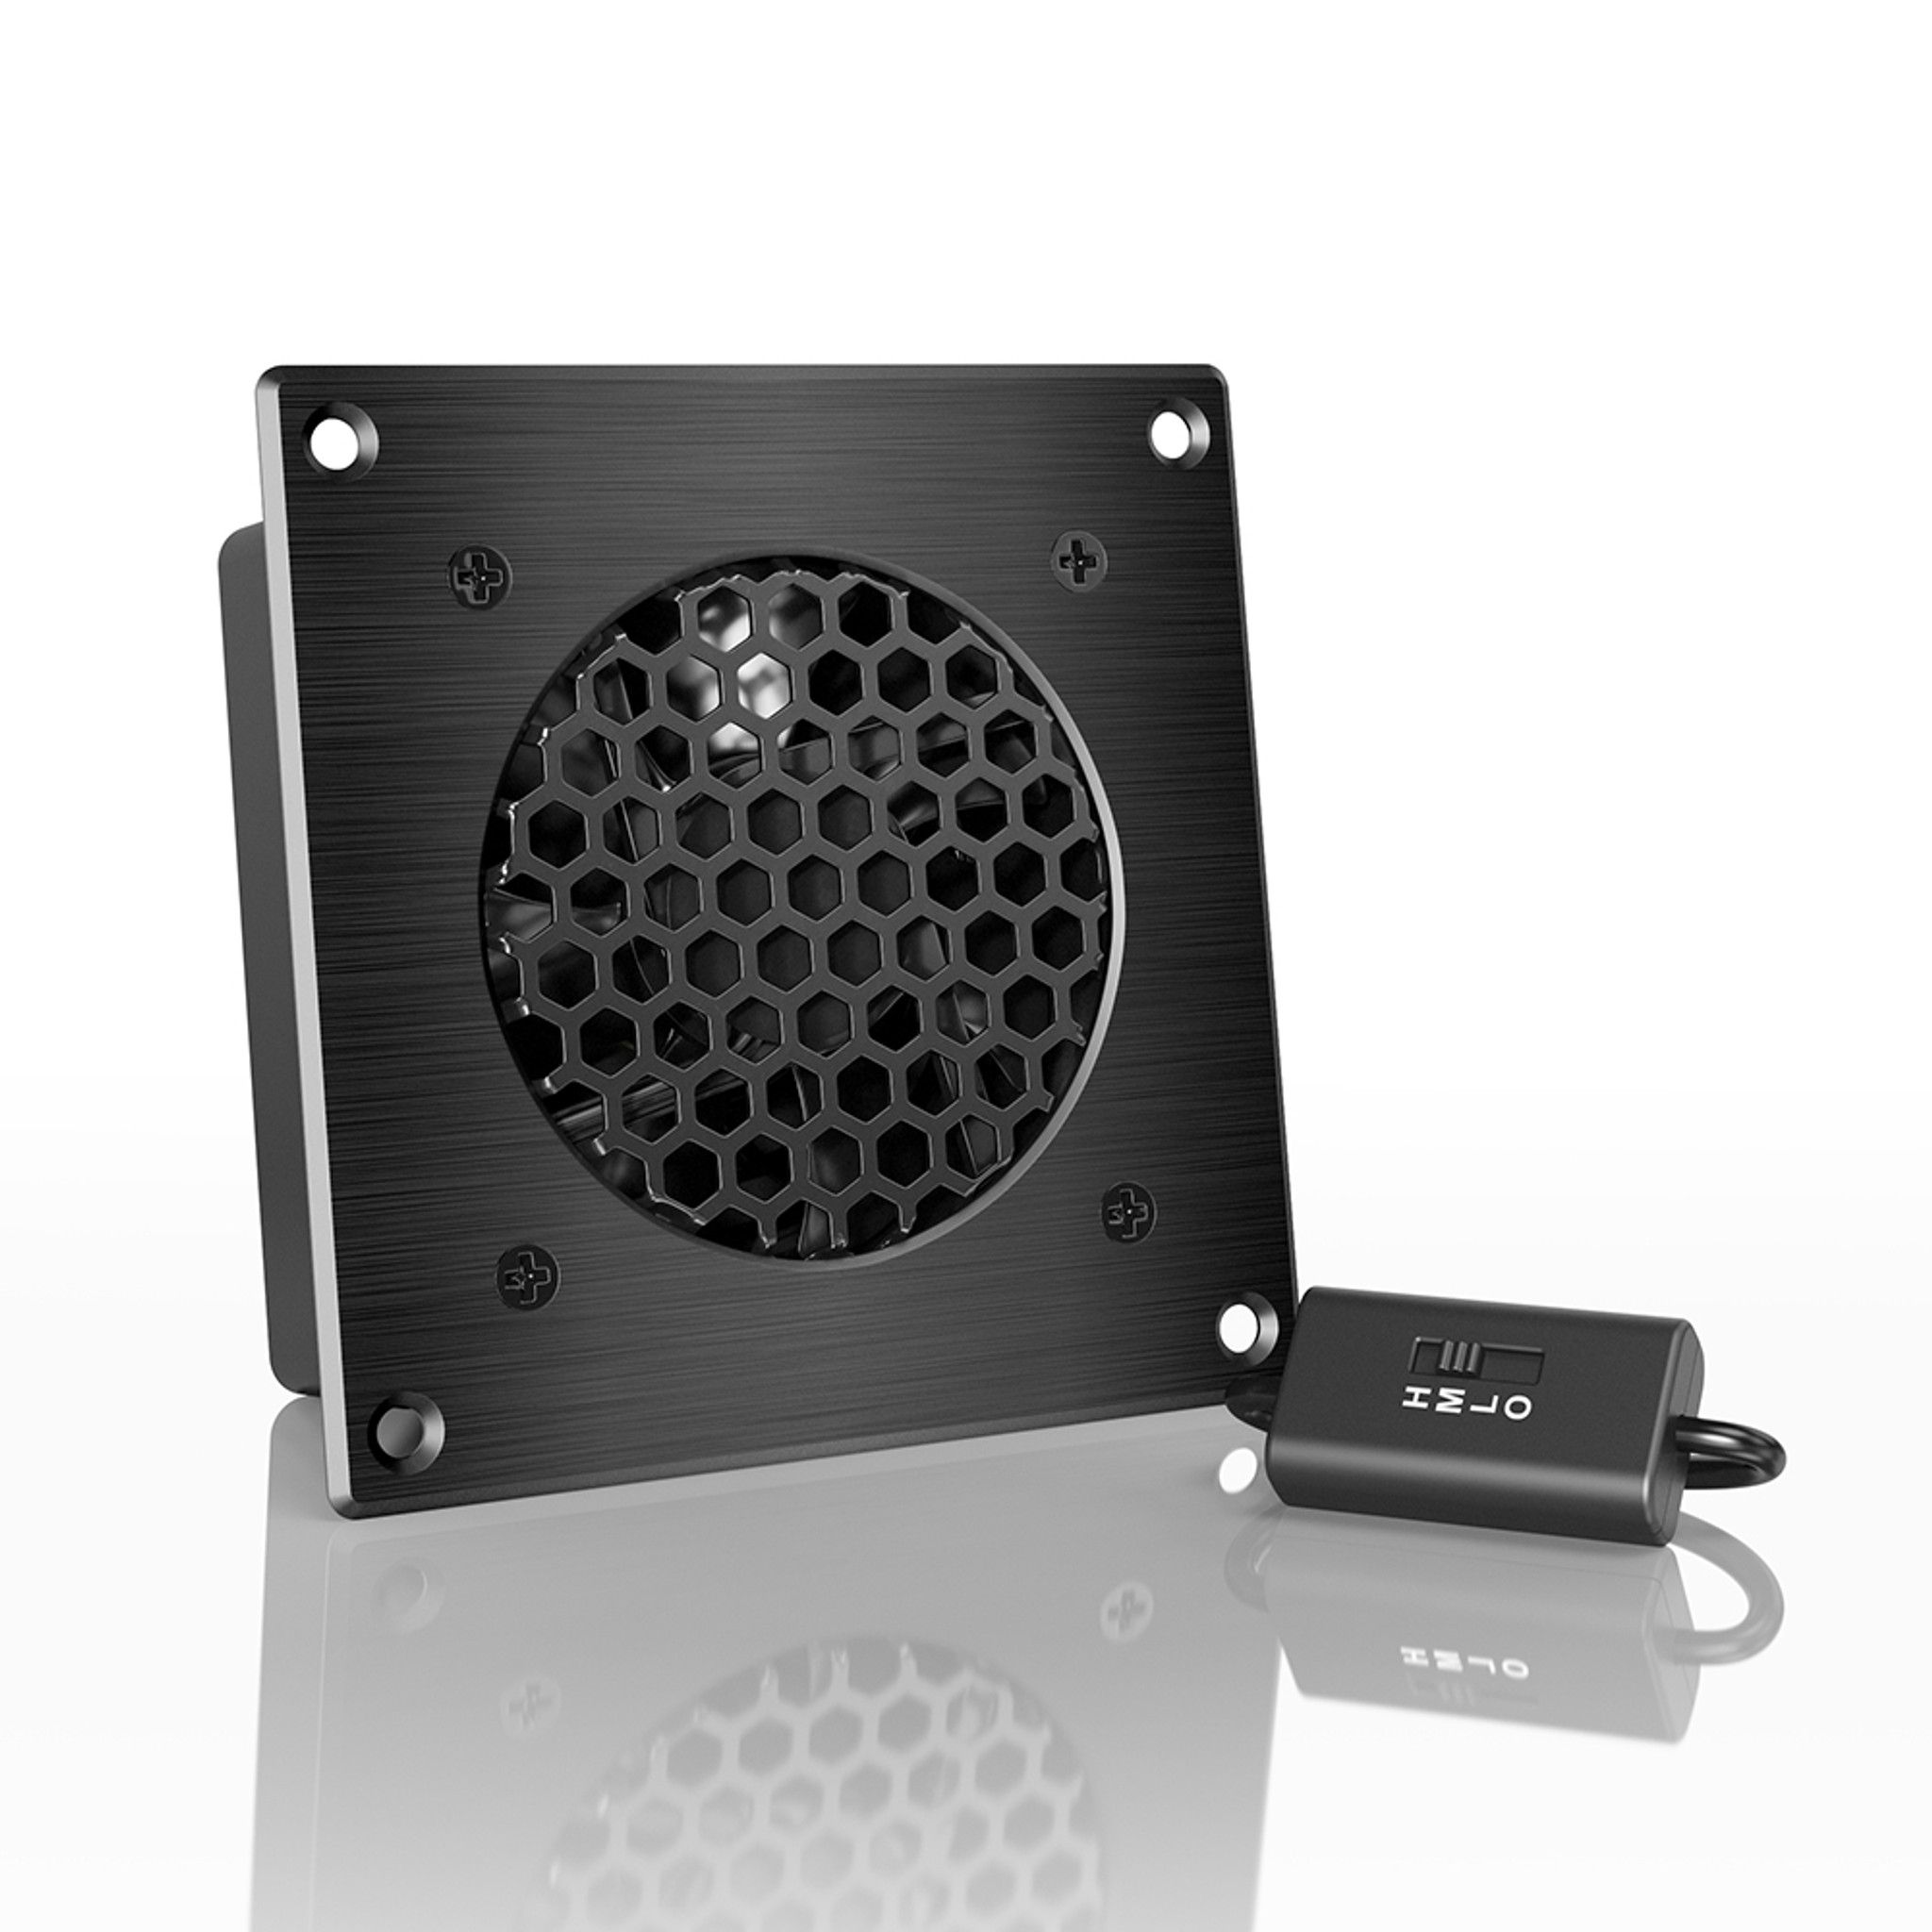 AIRPLATE S1 Home Theater and AV Quiet Cabinet Cooling Fan